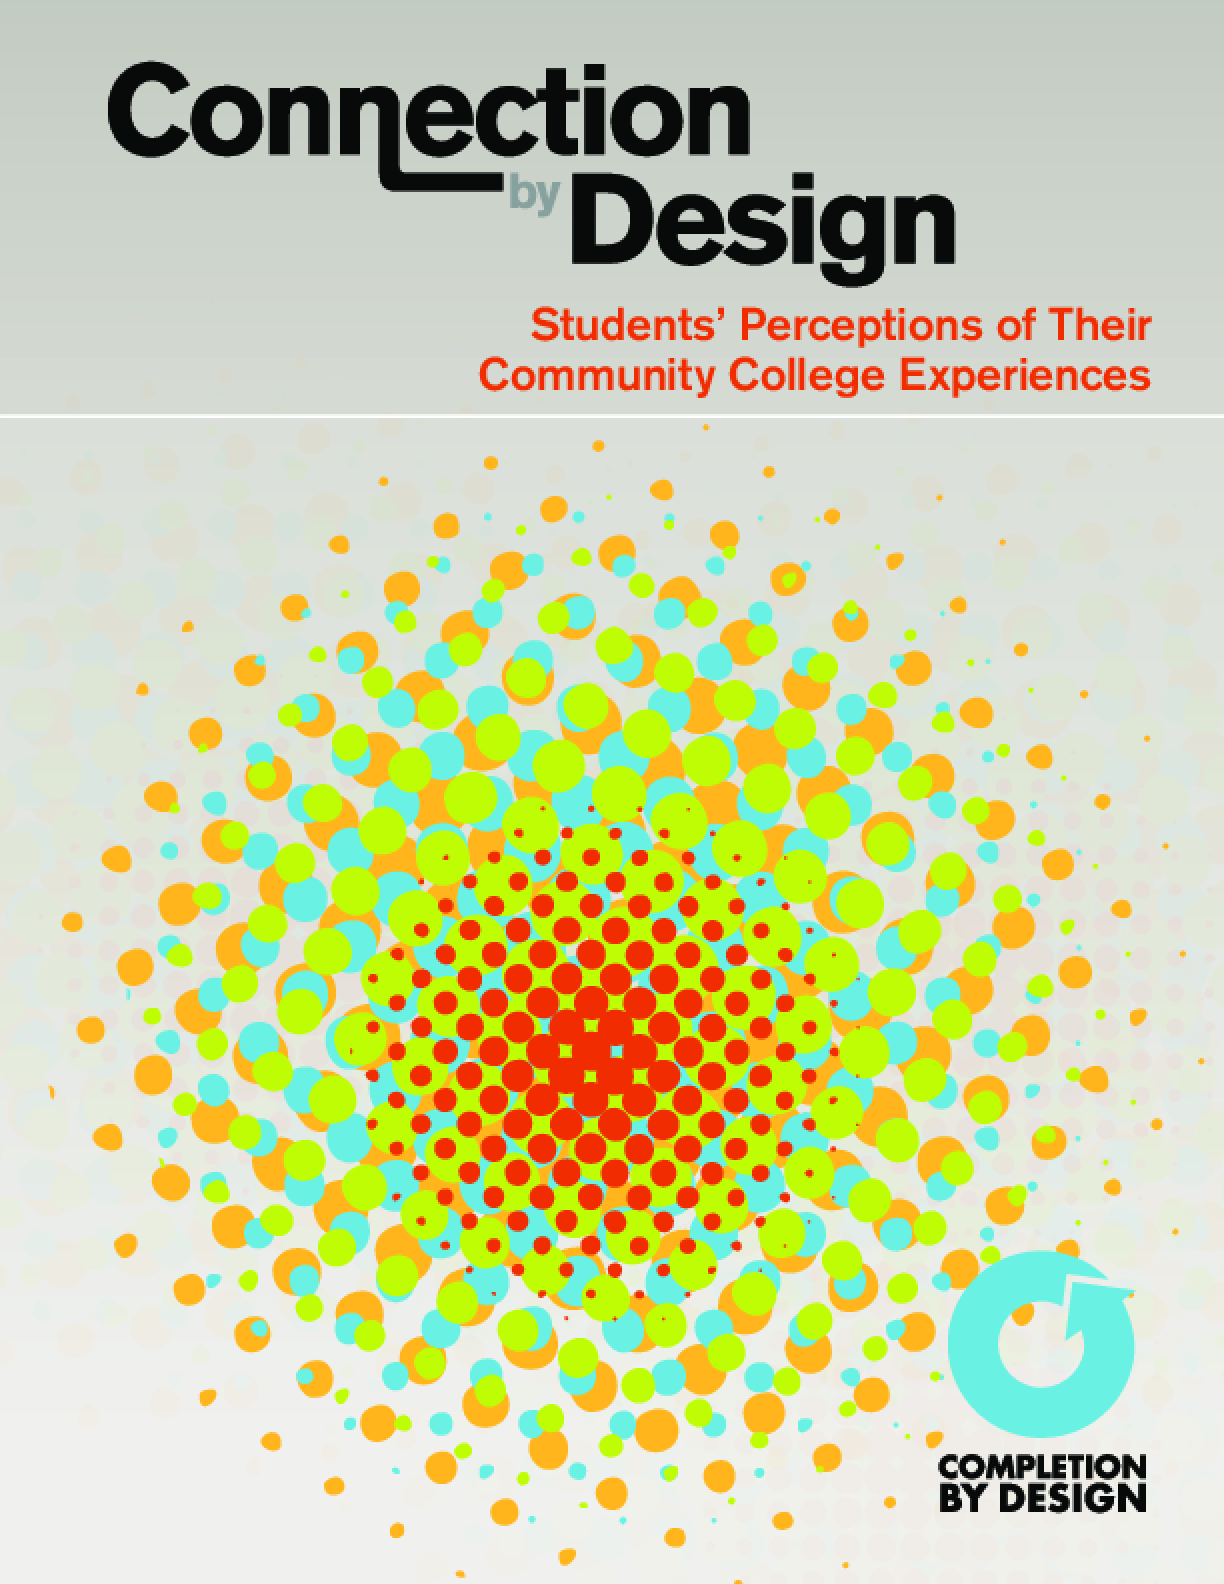 Connection by Design: Students' Perceptions of Their Community College Experiences